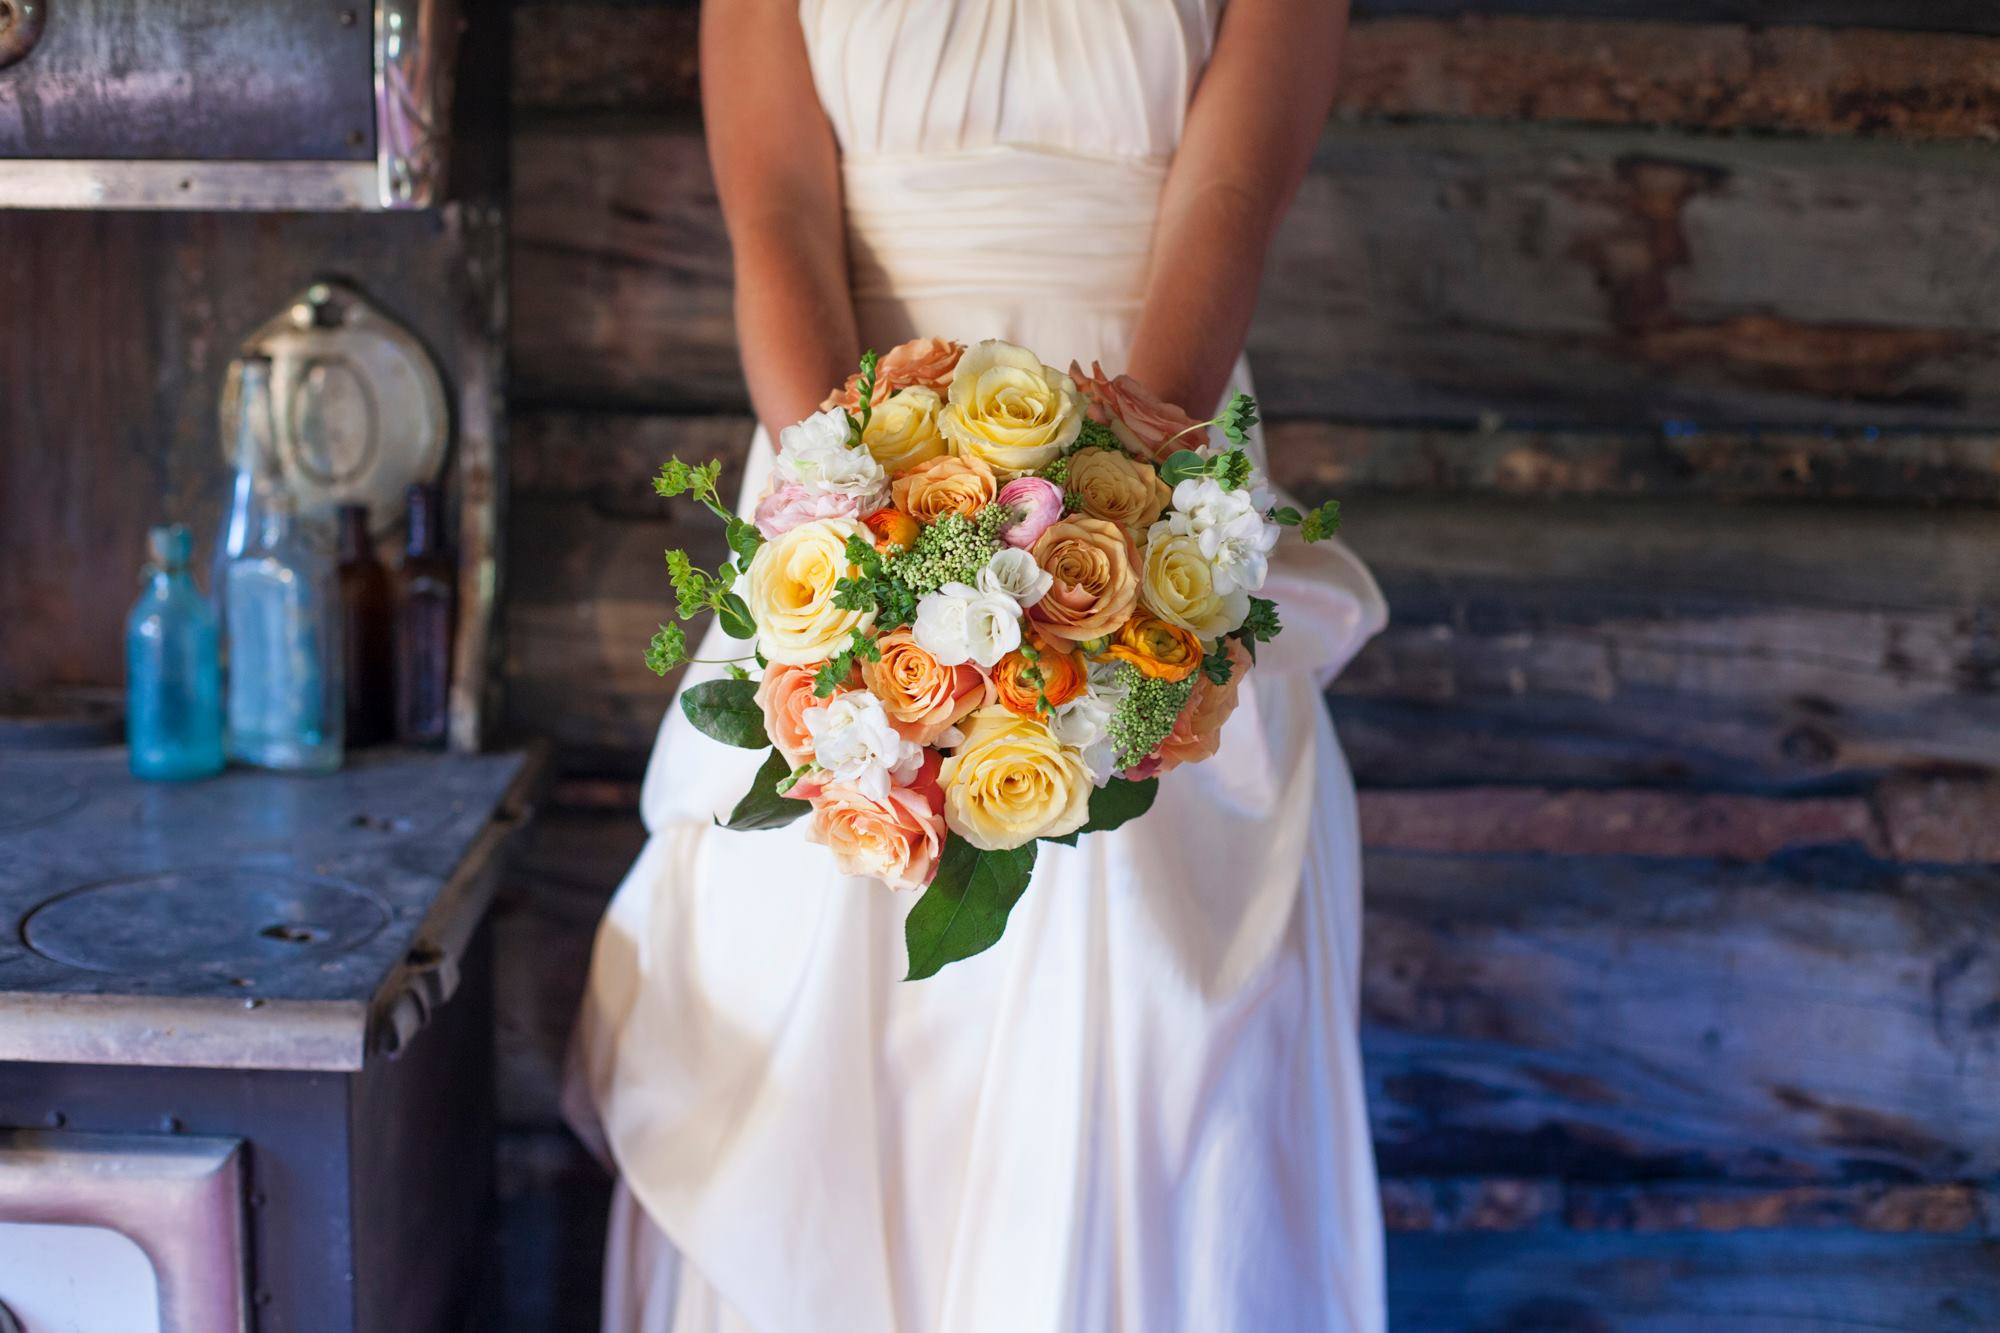 july-4th-wedding-breckenridge-dry-gulch-placer-wedding-painter-yellow-and-and-orange-rose-bouquet-rustic-wedding